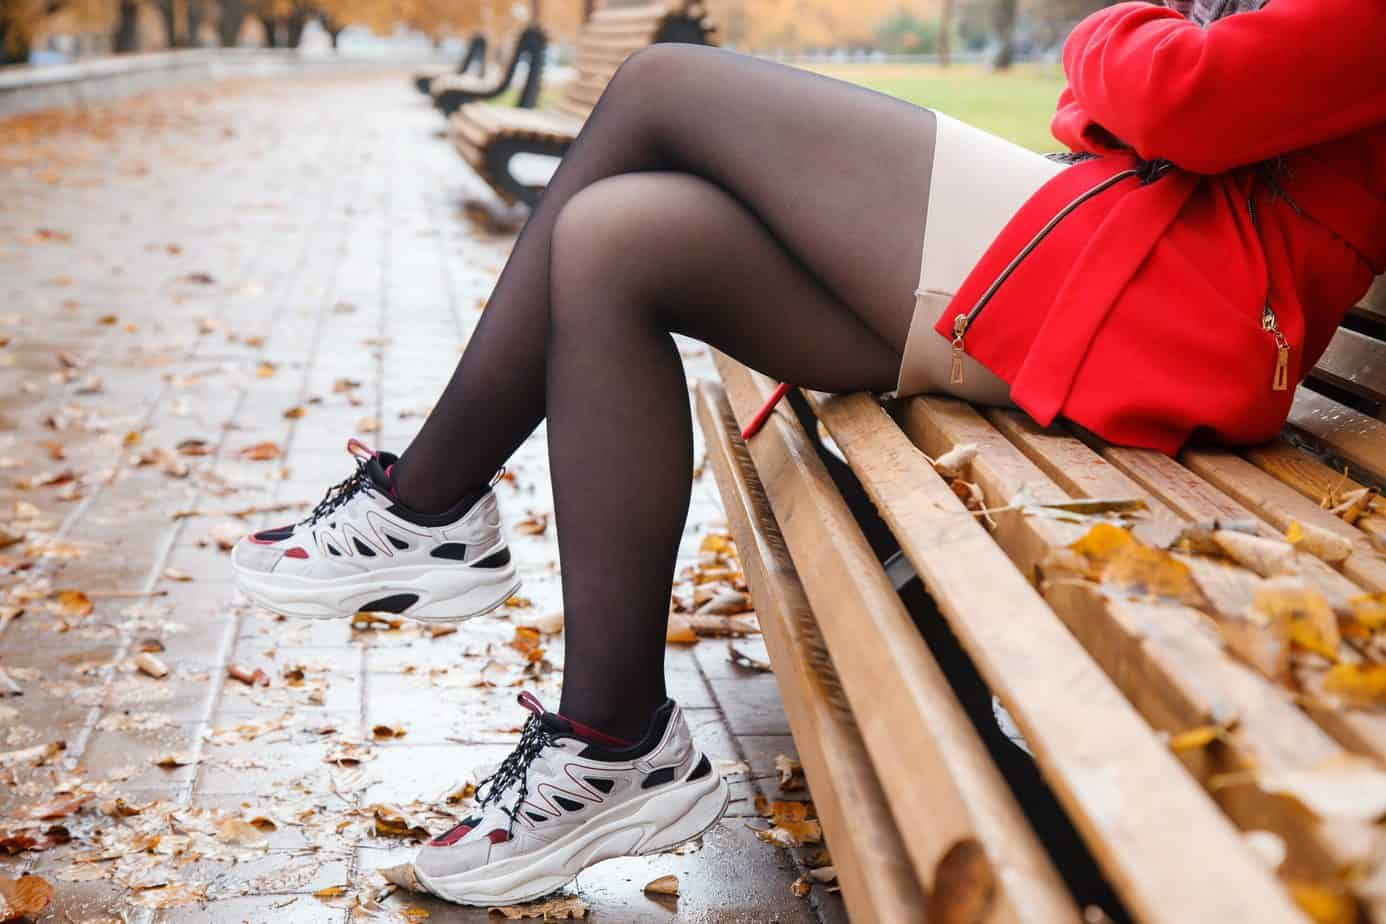 a girl sitting on a bench wearing stockings